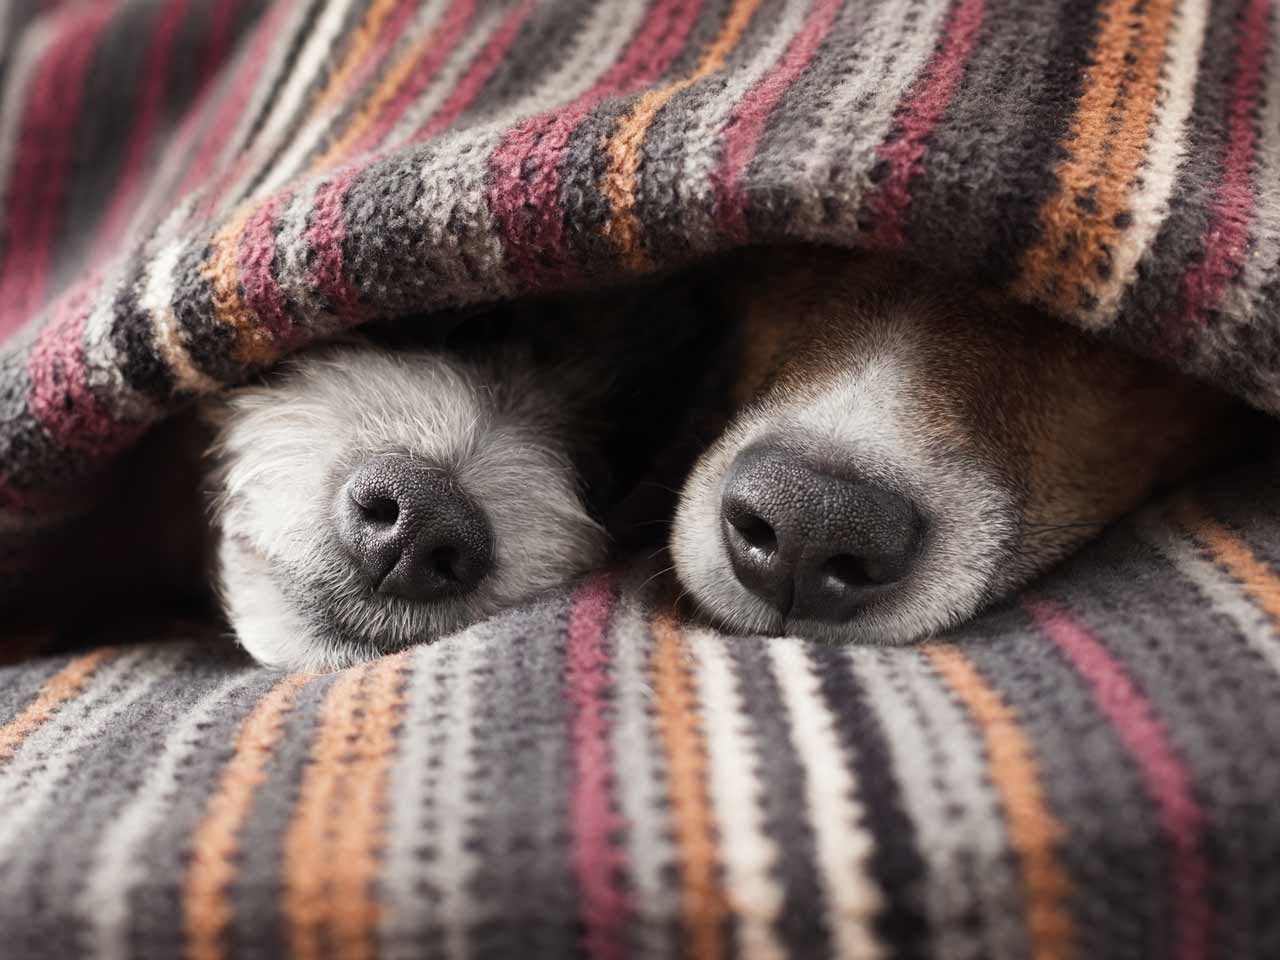 Dogs hiding under blanket